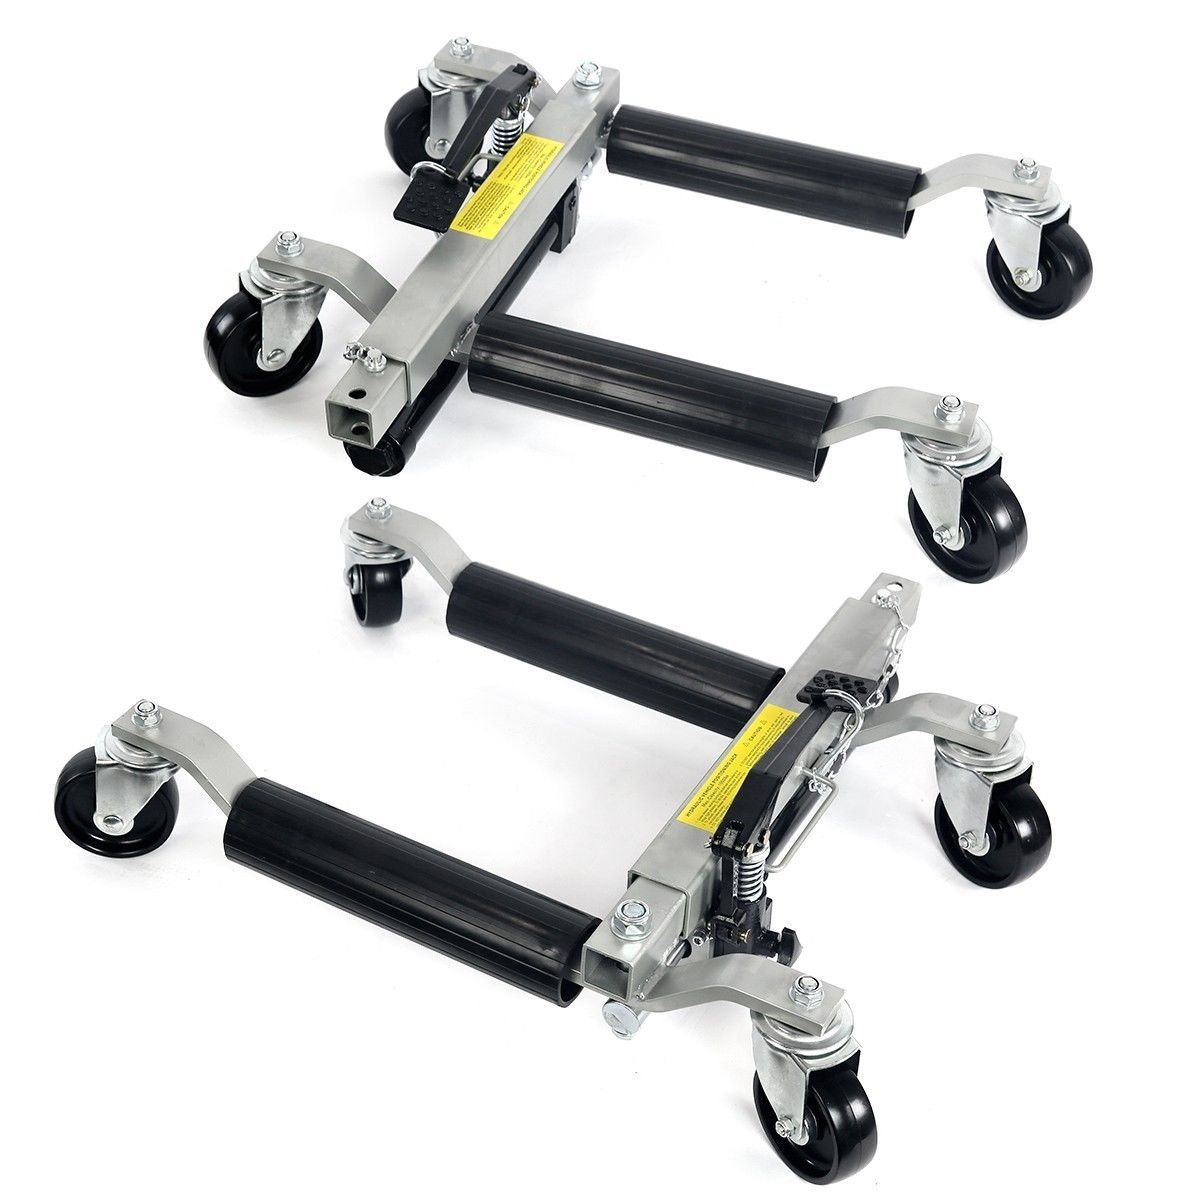 Hydraulic car dolly mover multi surface steam cleaner